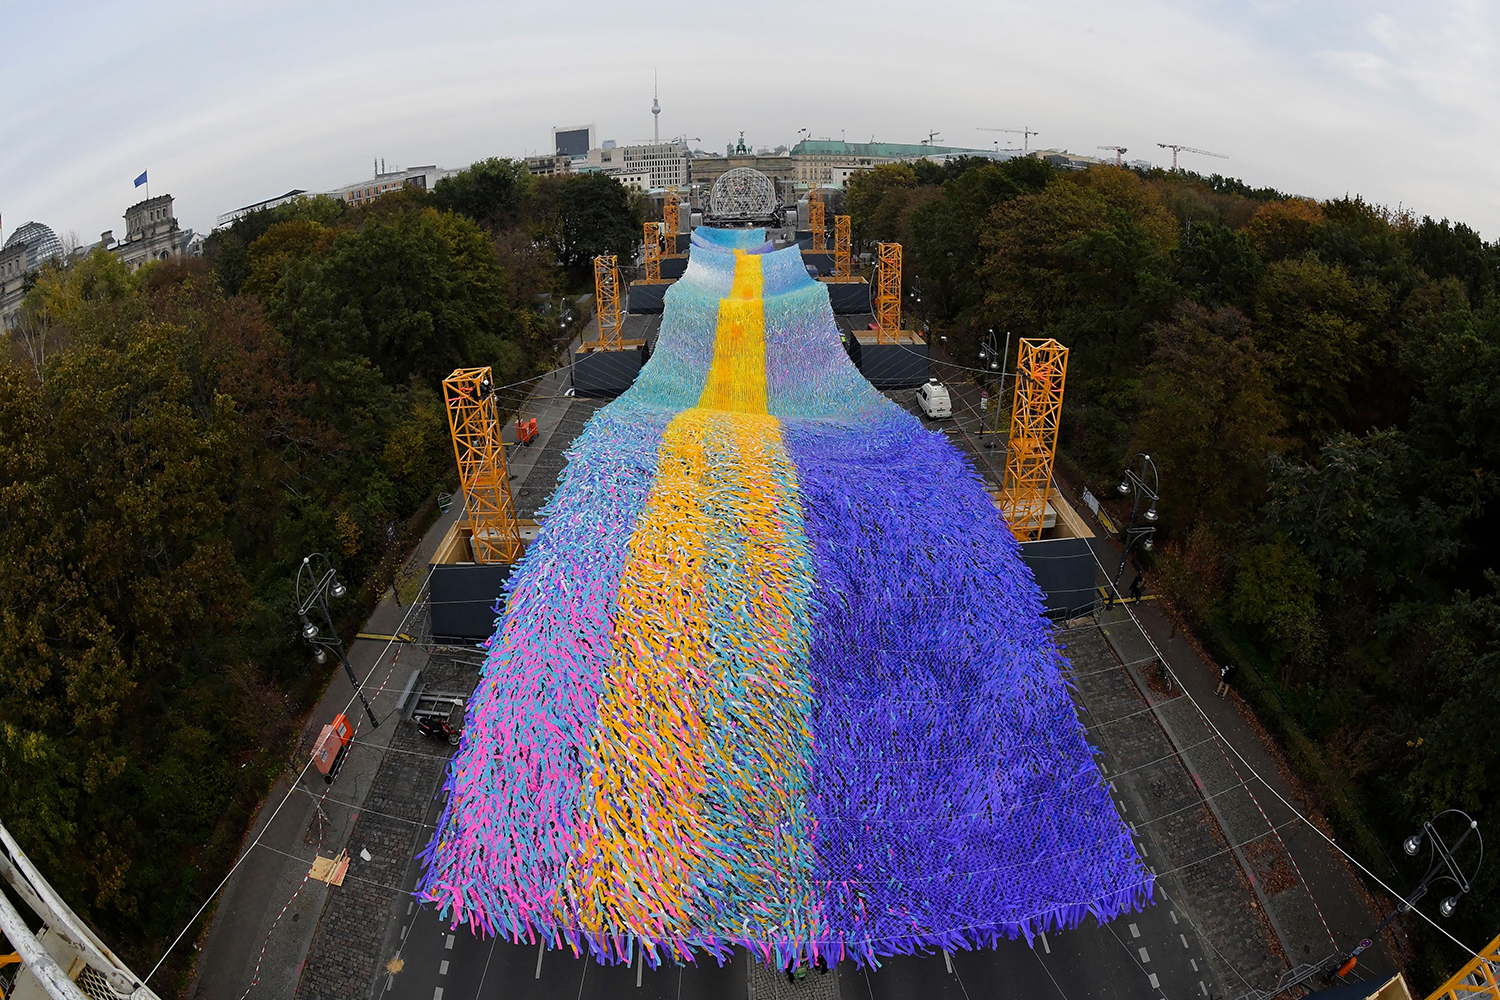 The installation Visions in Motion by artist Patrick Shearn is seen during a test run between the Brandenburg Gate and the Victory Column in Berlin on Nov. 1 ahead of the 30th anniversary of the fall of the Berlin Wall. TOBIAS SCHWARZ/AFP via Getty Images